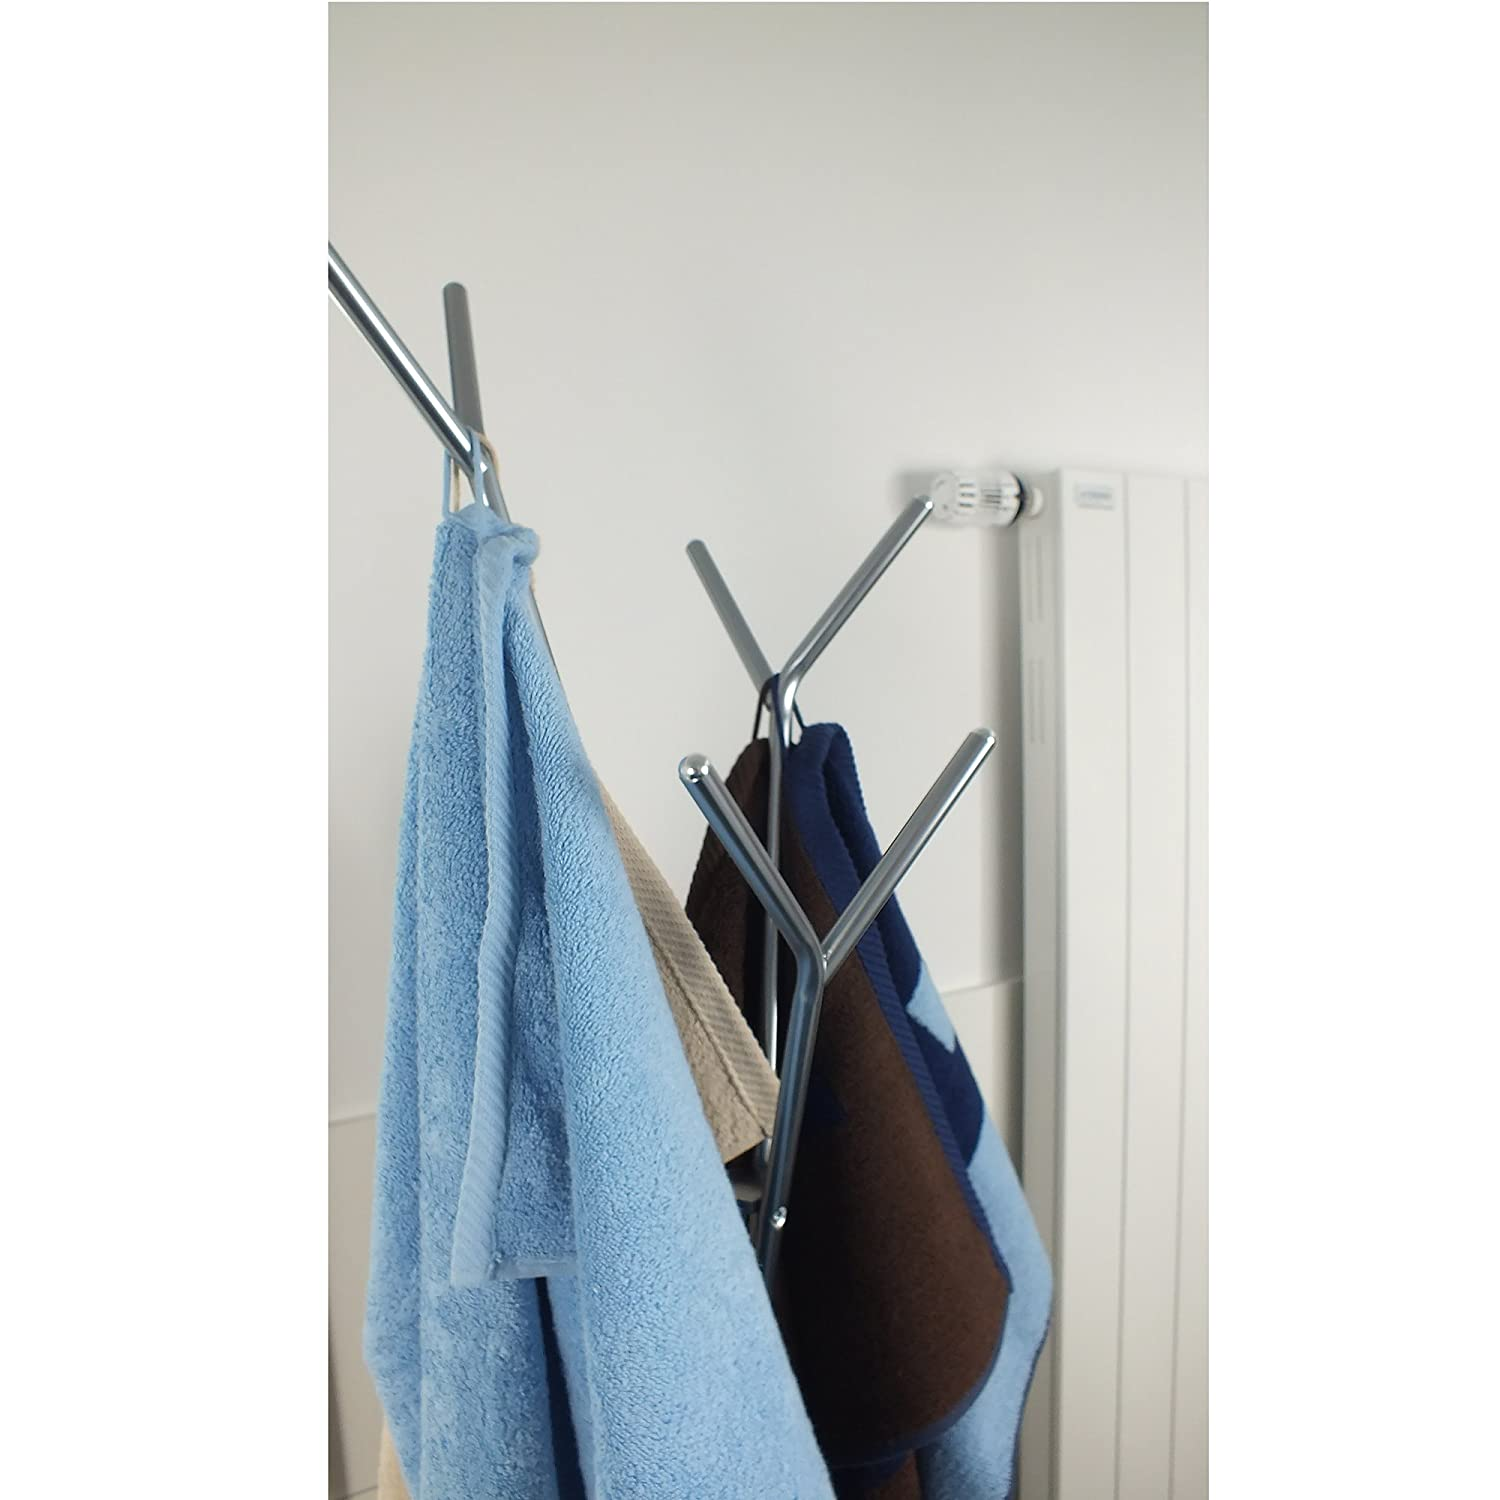 Amazon.com: Kela 22233 Towel Holder Sinerio Collection Metal Chrome ...